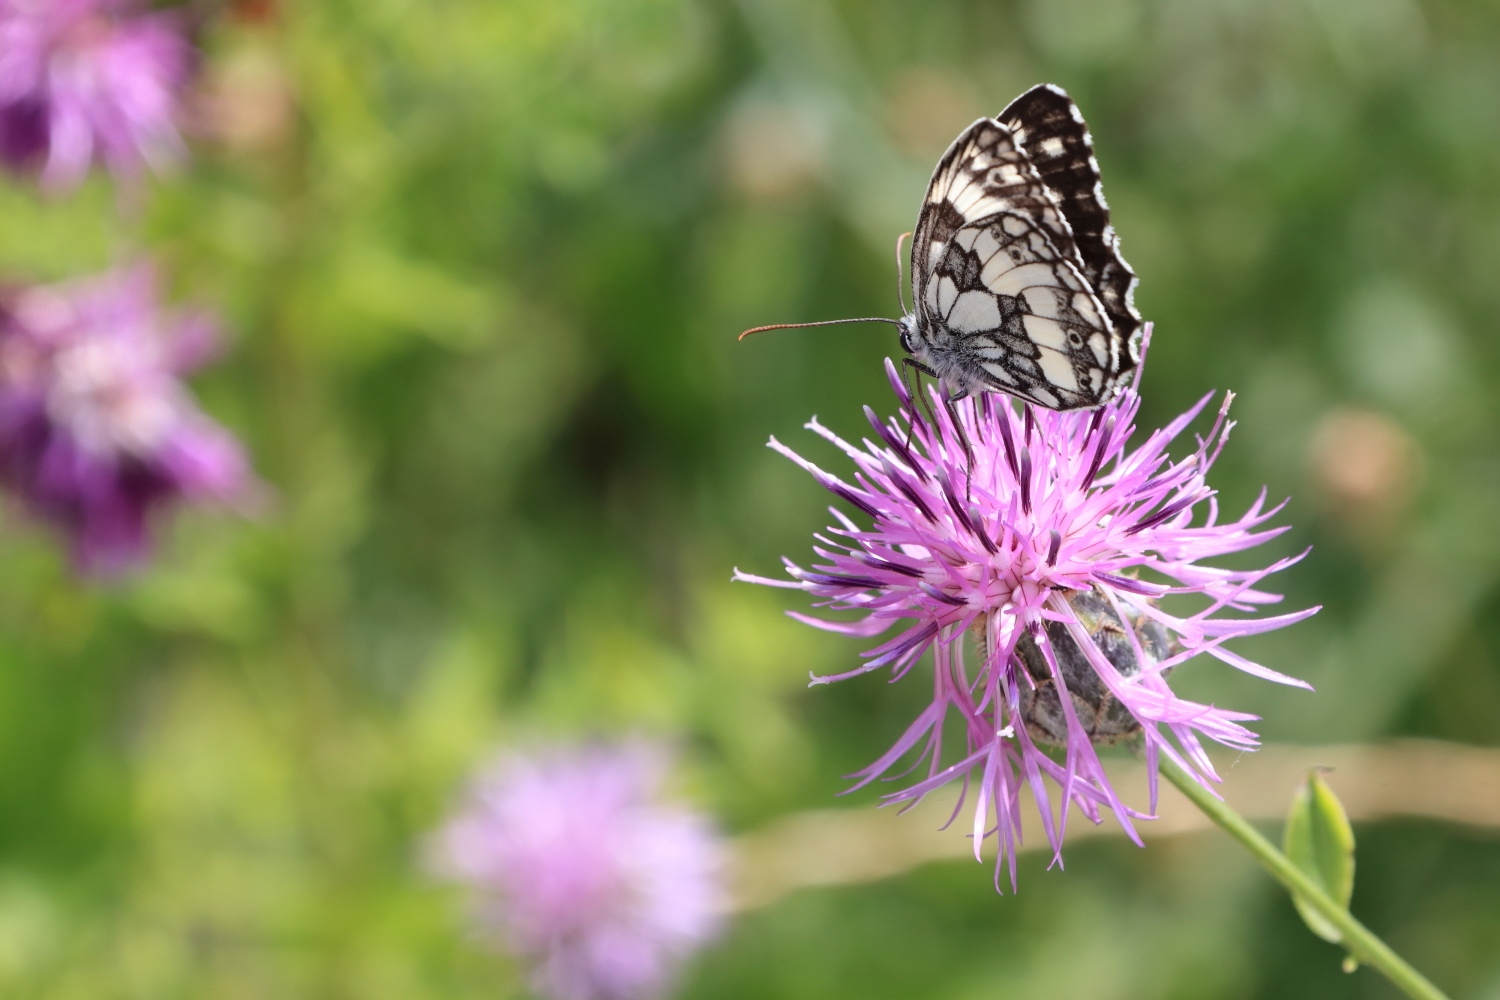 Butterfly in spring time.    Italy. 14 July 2013. 1/320 s, f/14, ISO 640, 300 mm, EOS 6D + EF 28-300 L